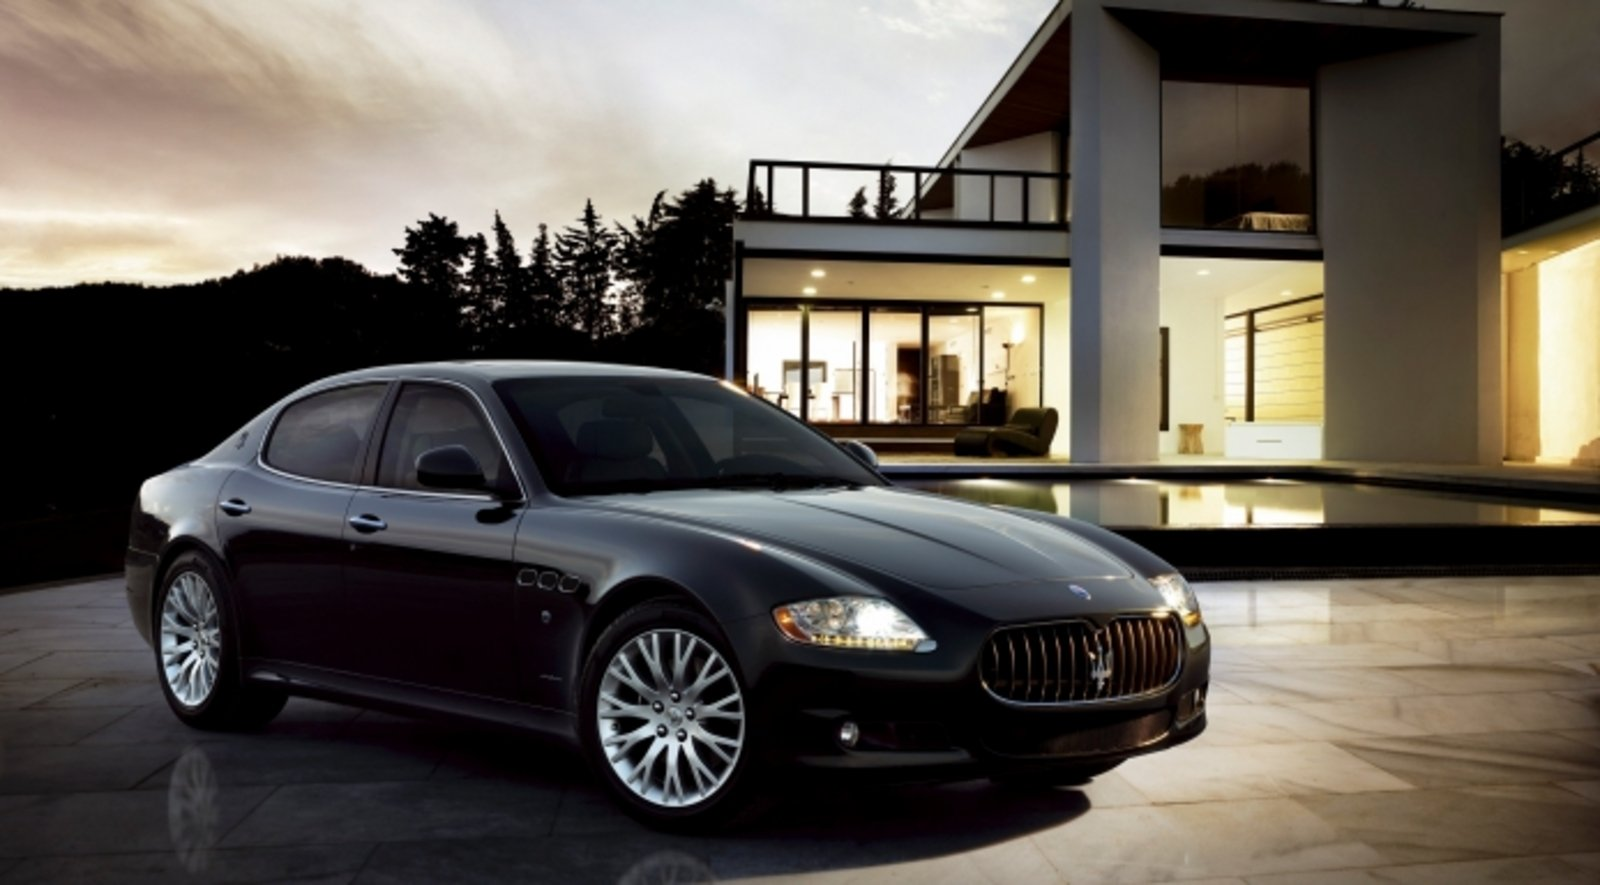 2011 maserati quattroporte review top speed. Black Bedroom Furniture Sets. Home Design Ideas